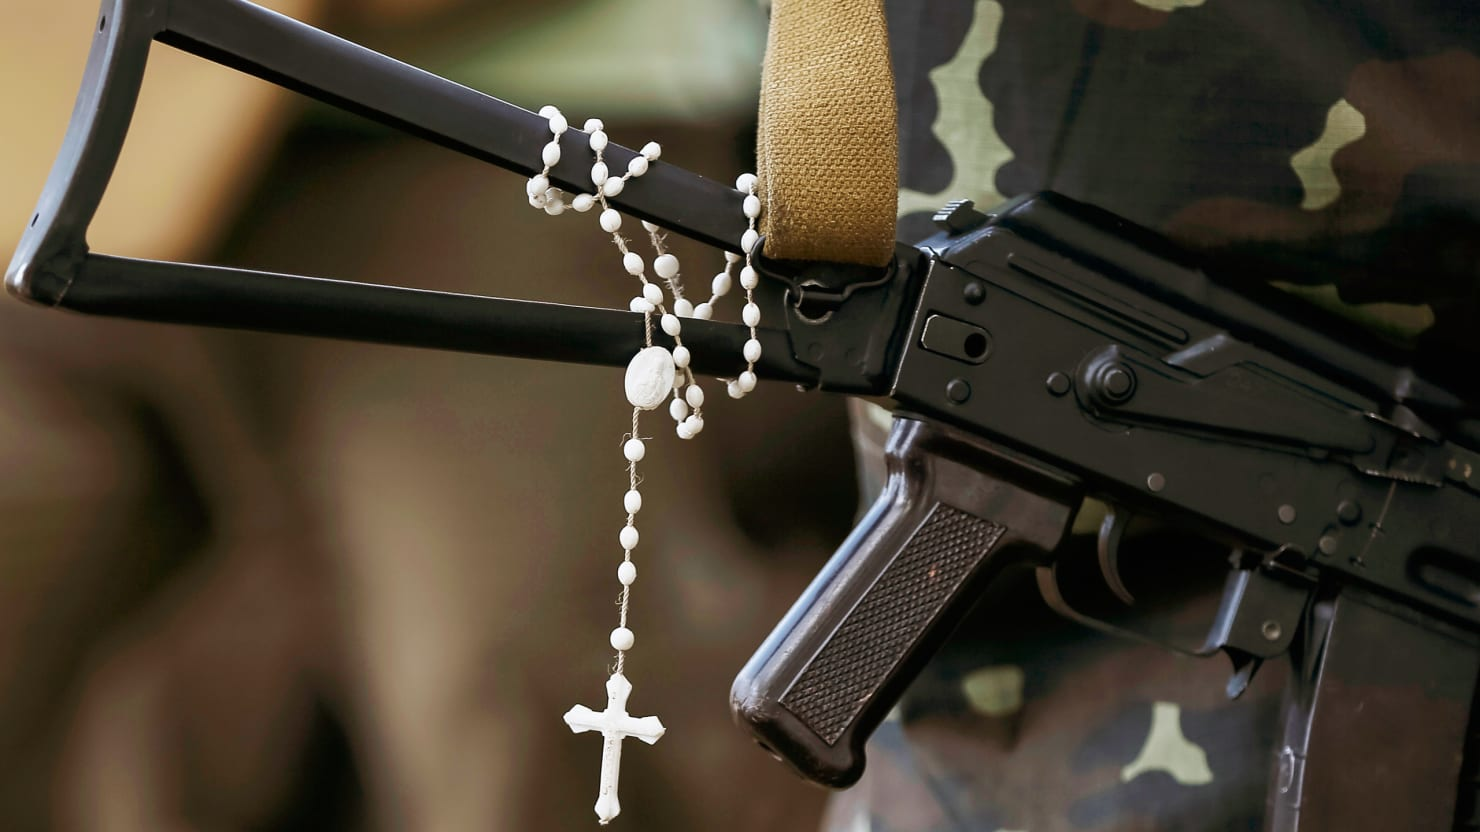 Yes, There Are Christian Terrorists